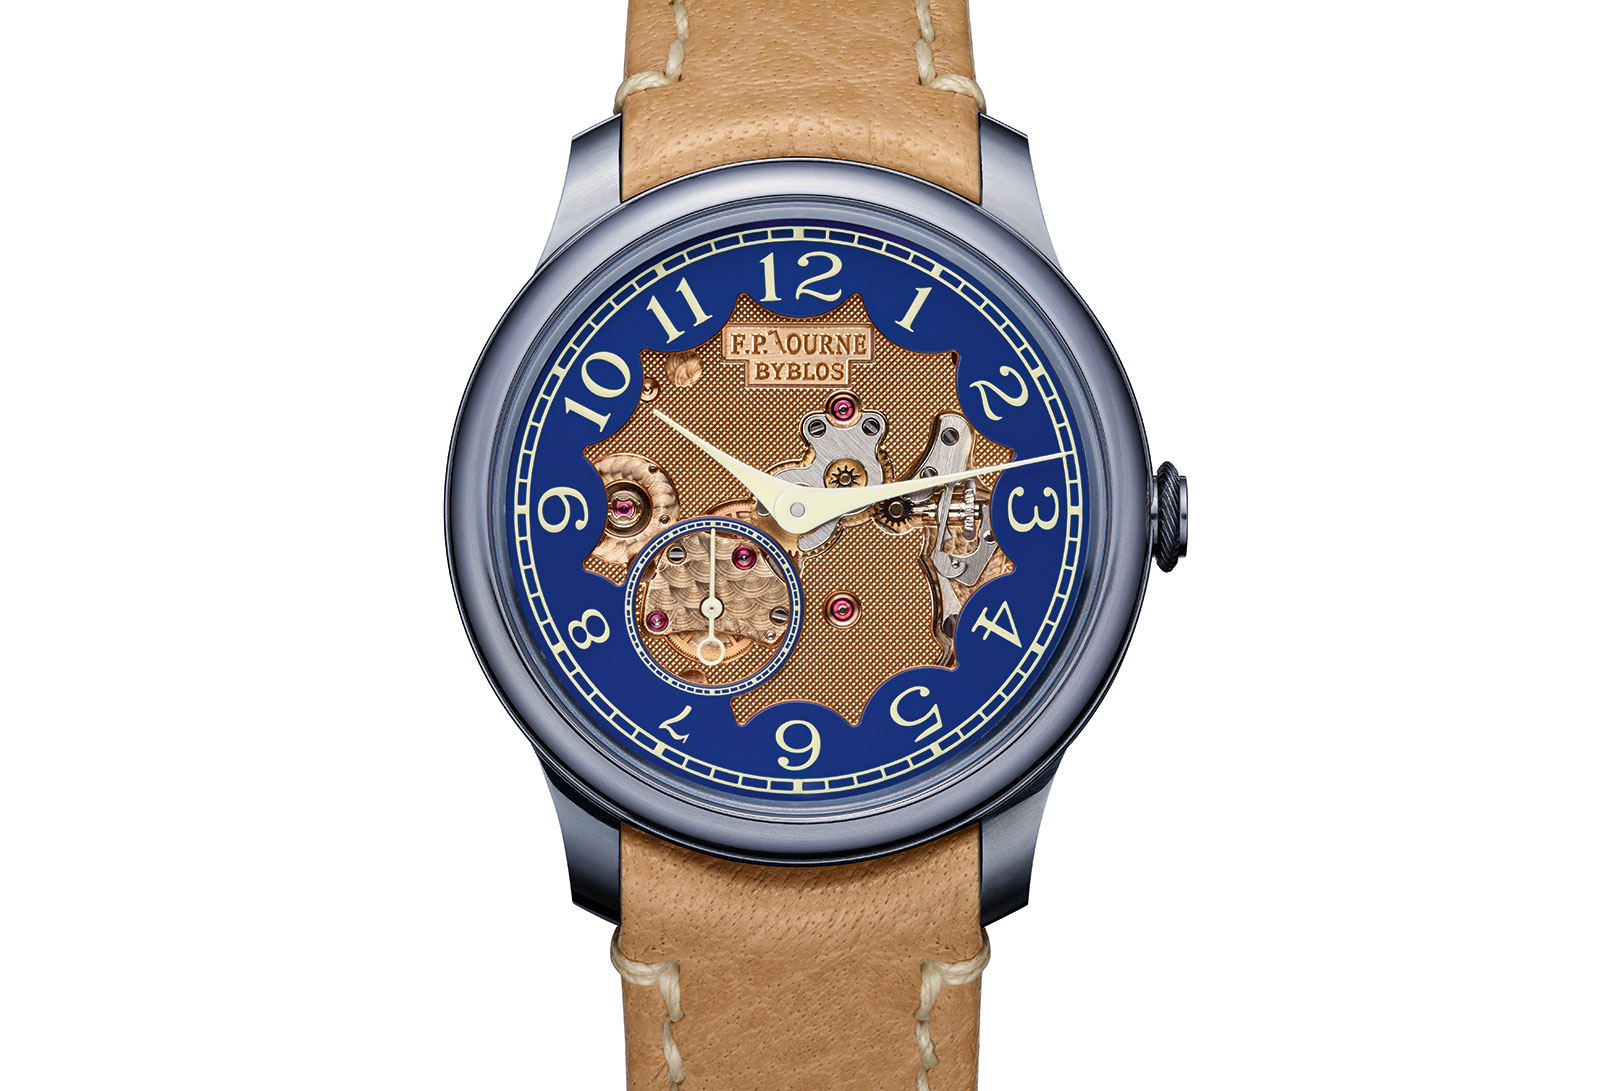 FP-Journe-Chronometre-Bleu-Byblos-2